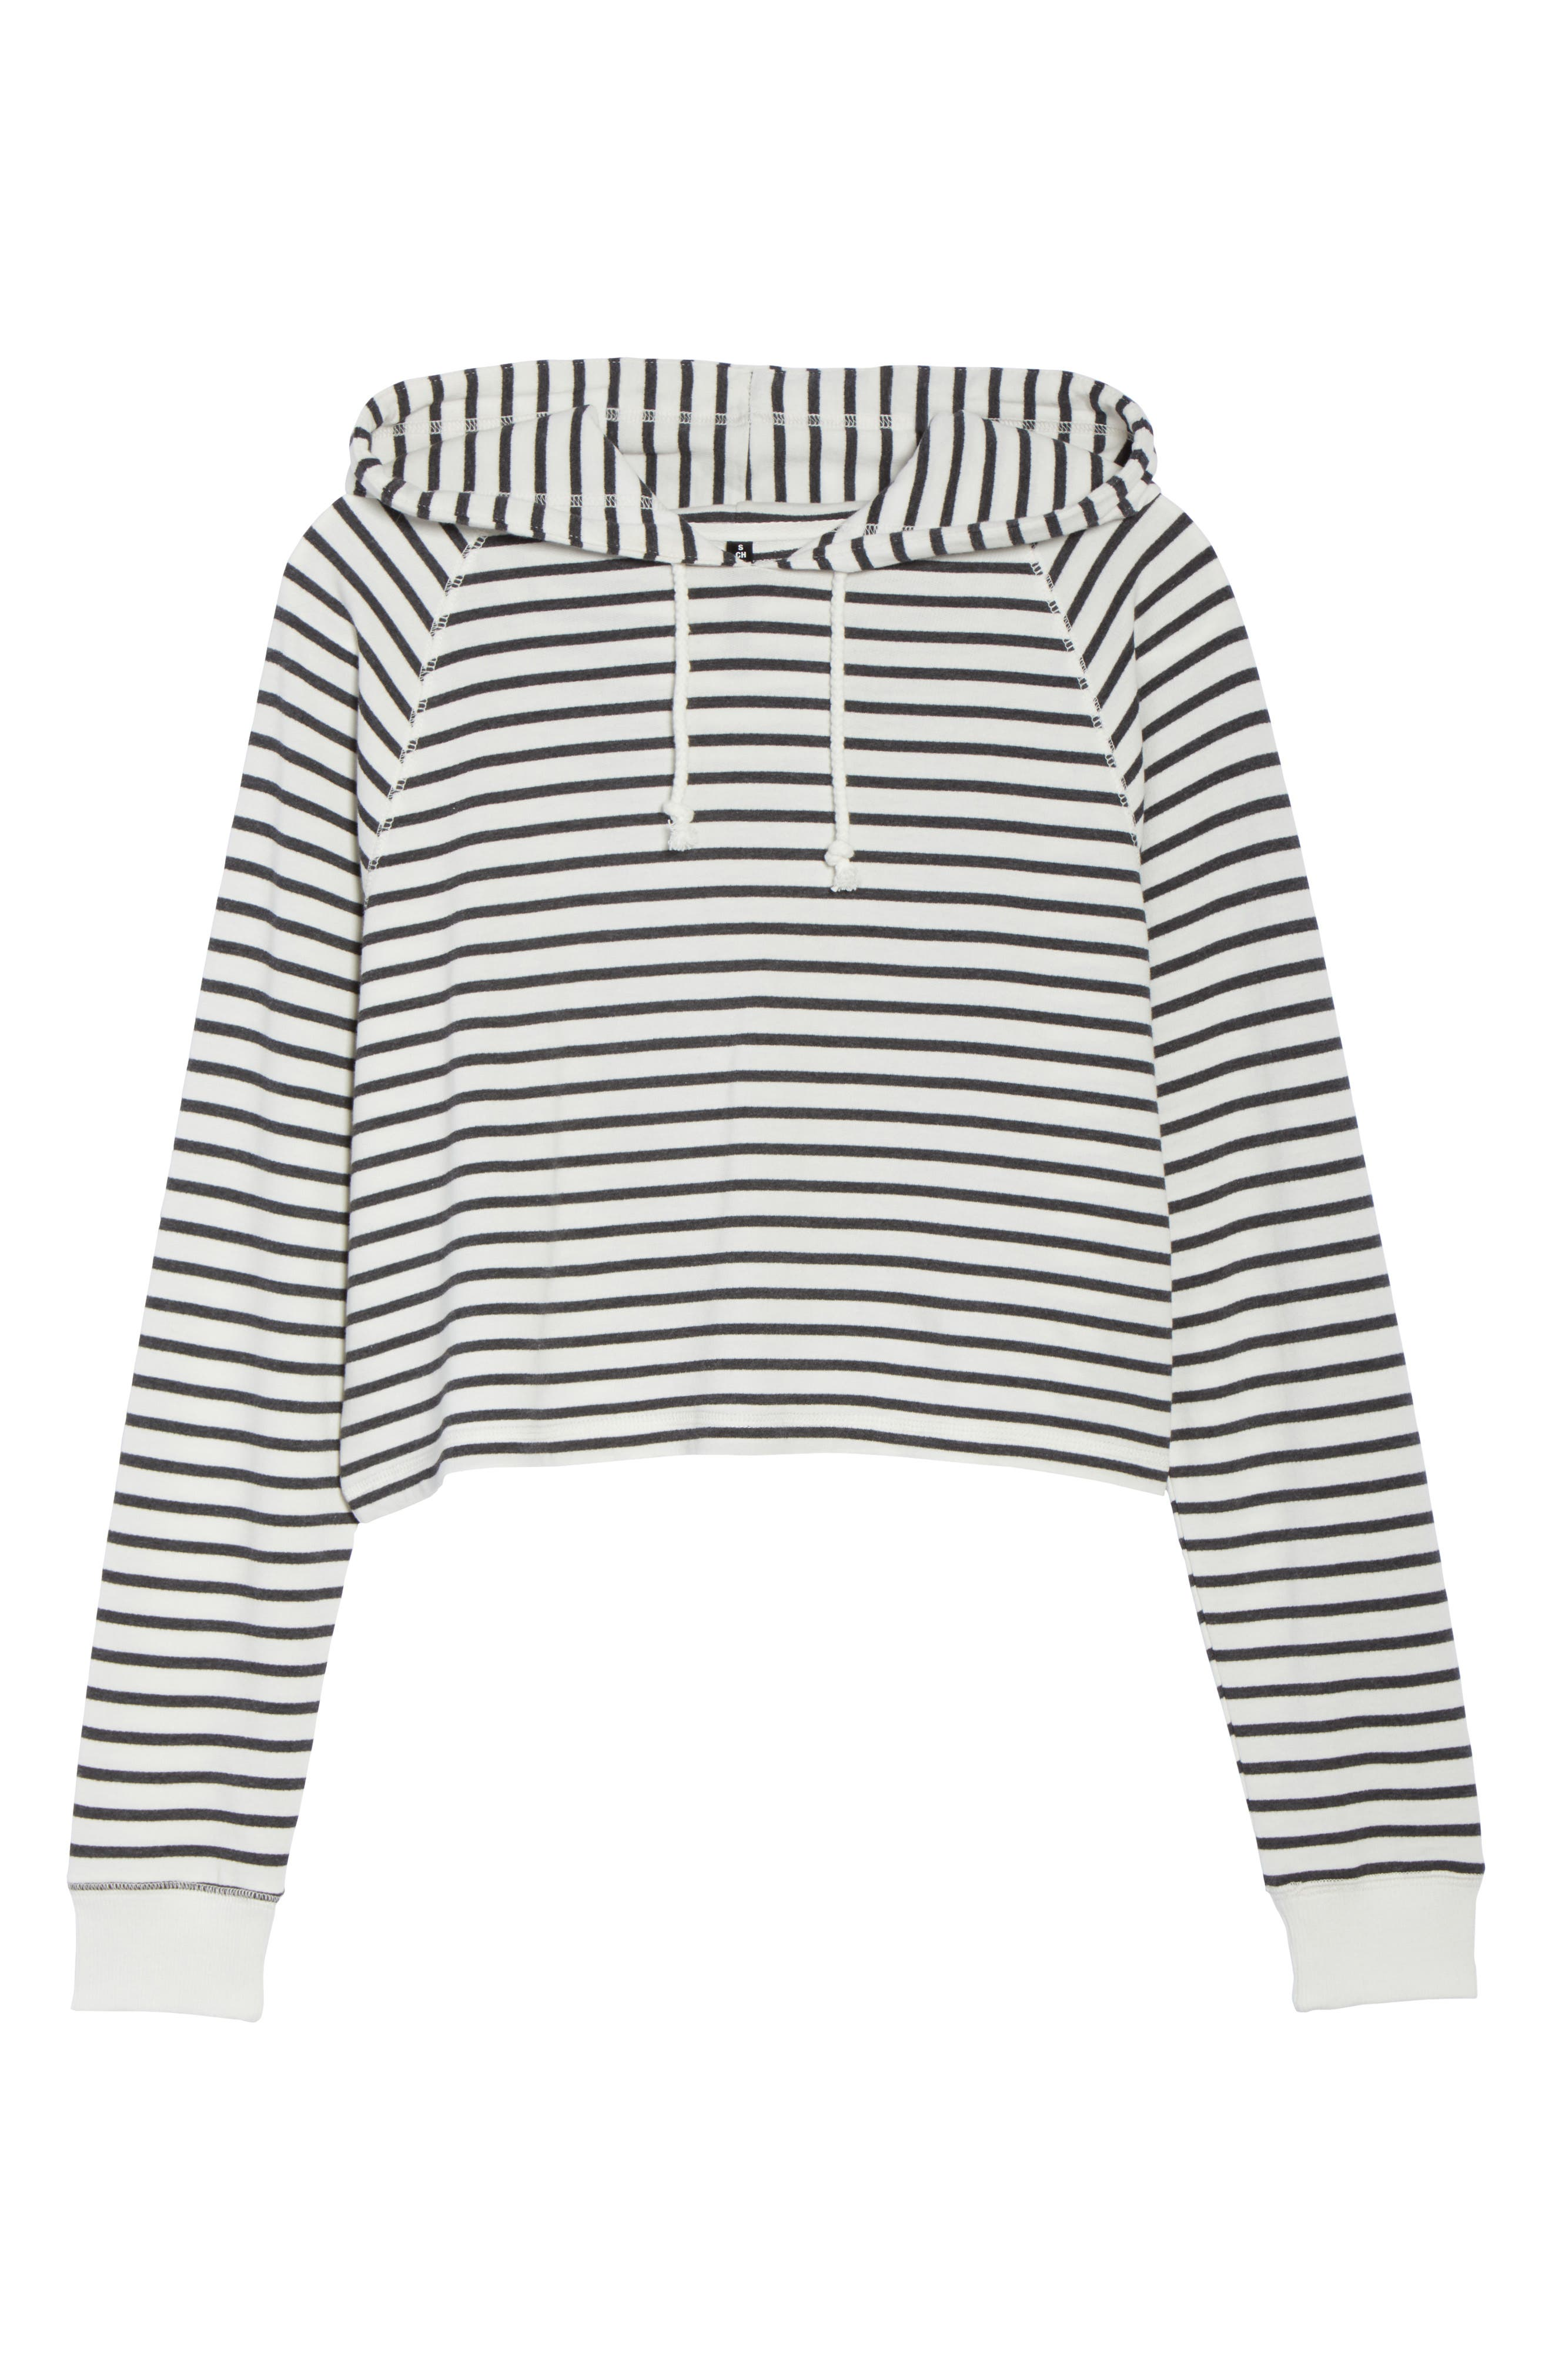 French Terry Crop Hoodie,                             Alternate thumbnail 6, color,                             025